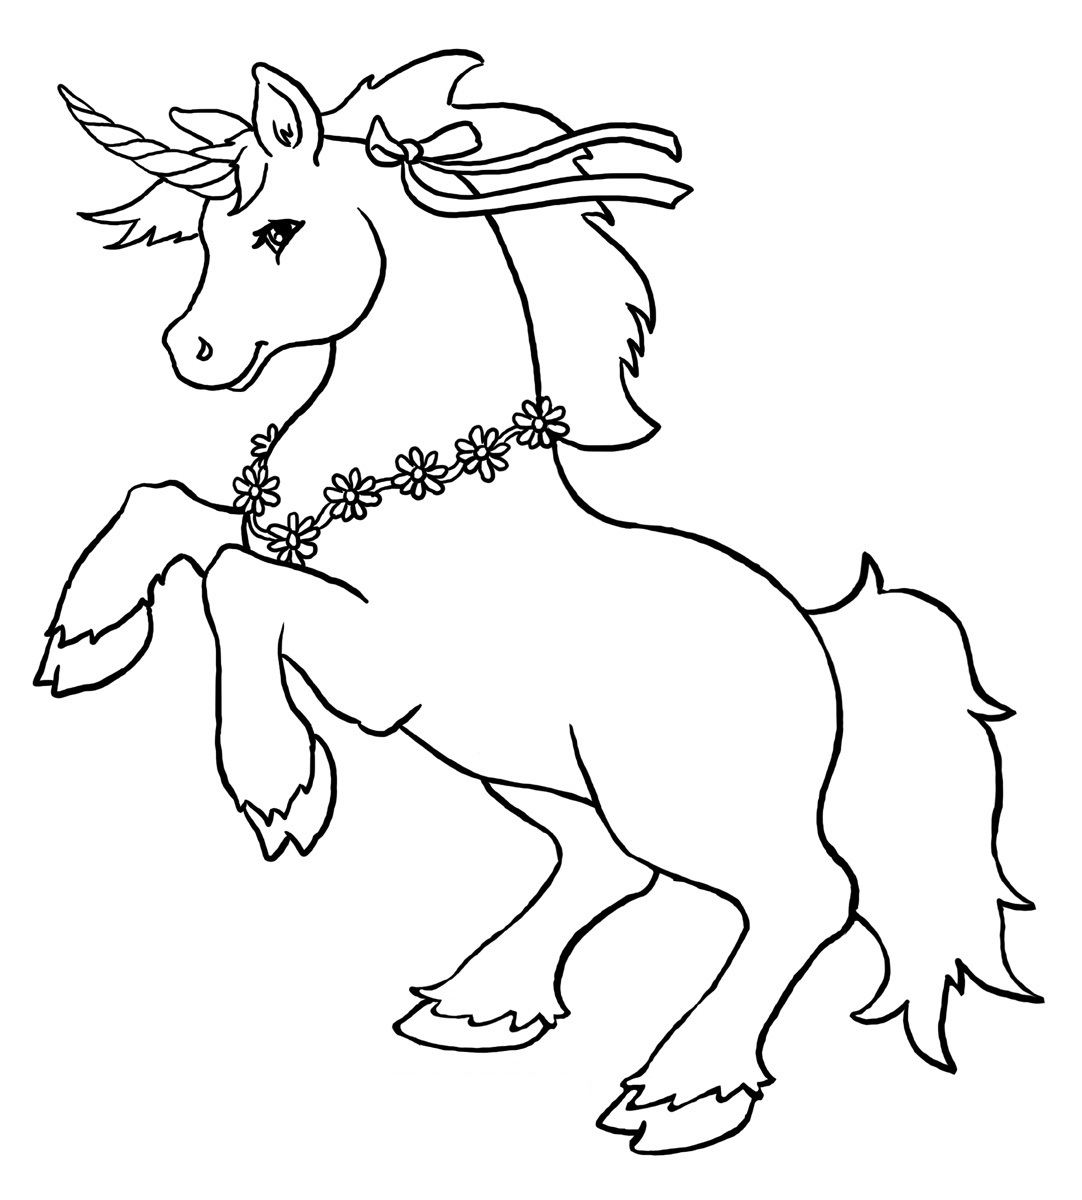 Unicorn coloring pages to print - Cute Unicorn Coloring Pages